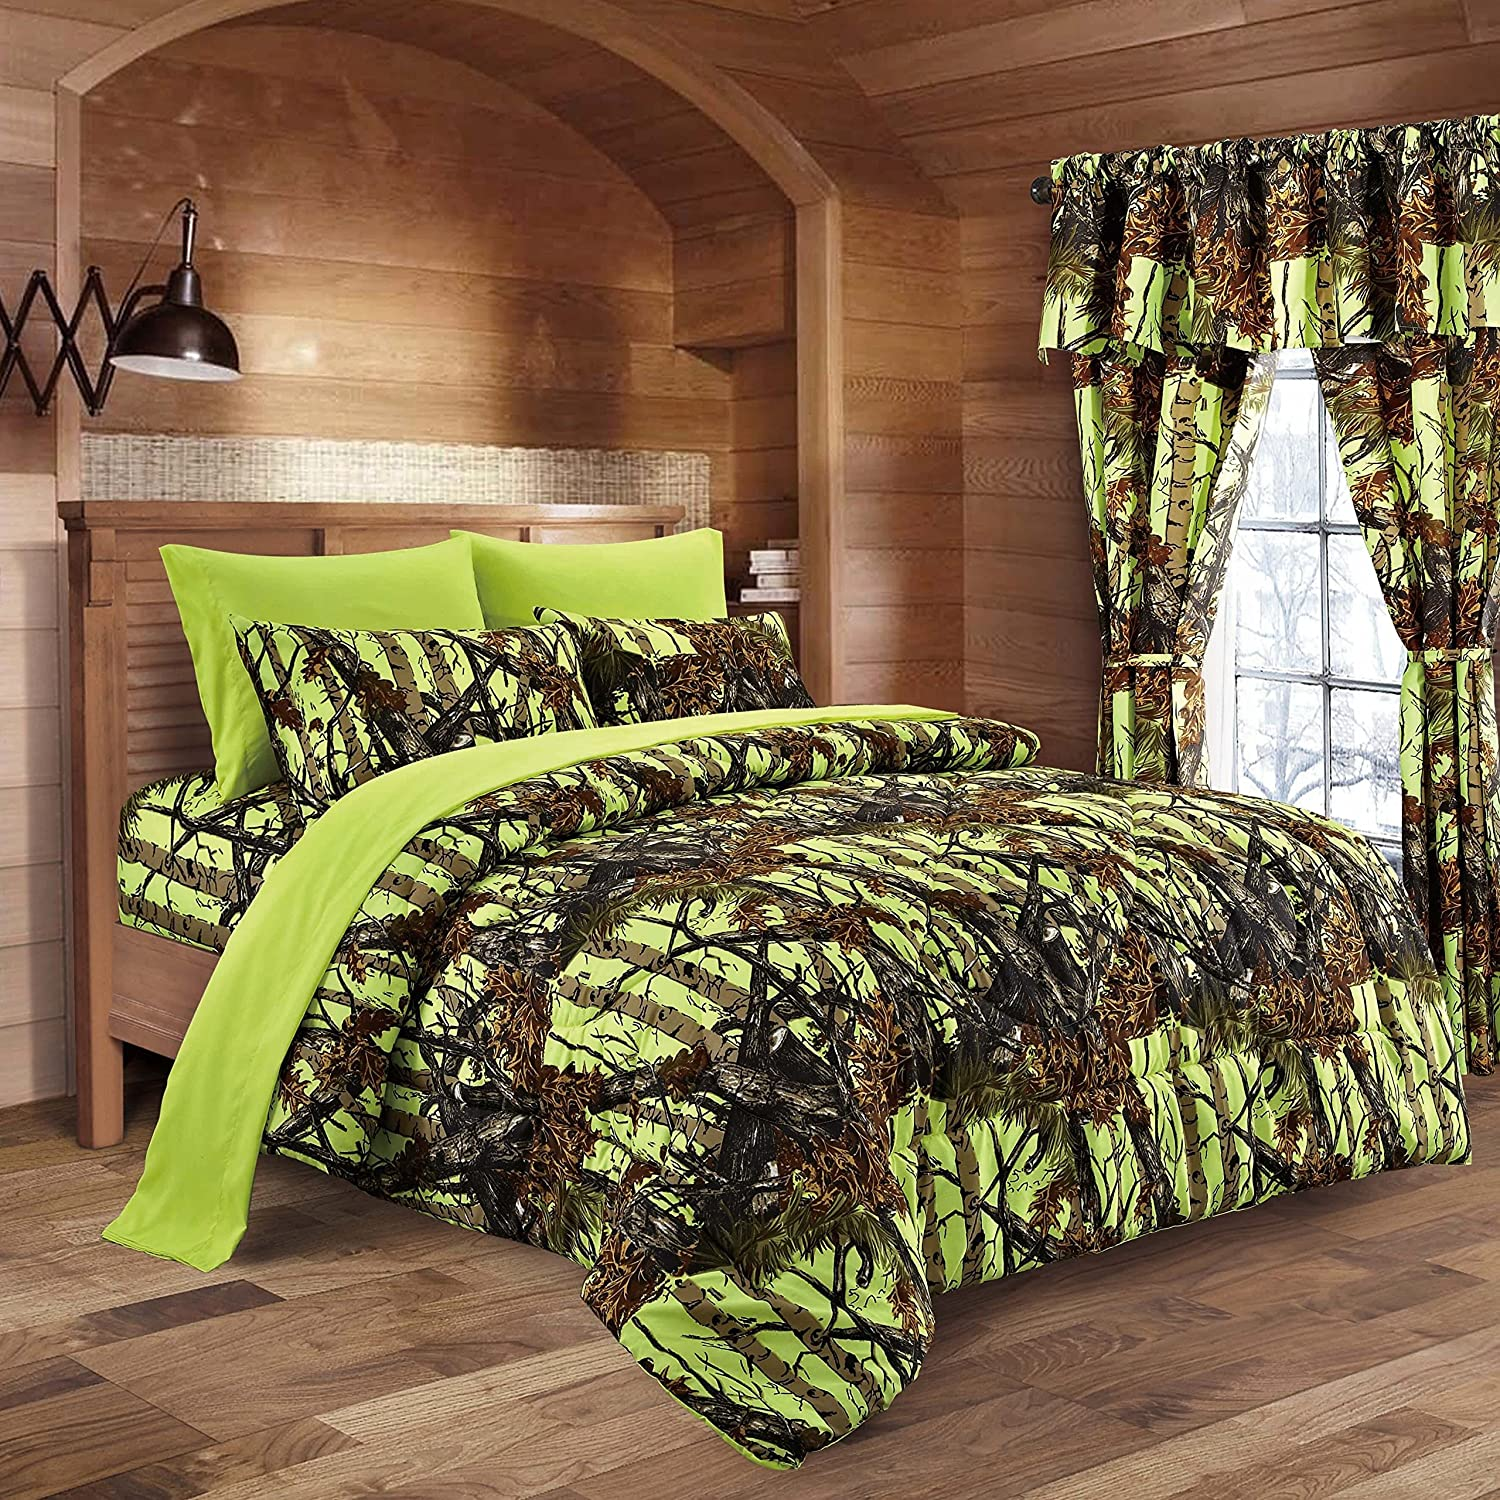 comforter pine photo camo mixed bedding victor by shipping mill free set bed usa